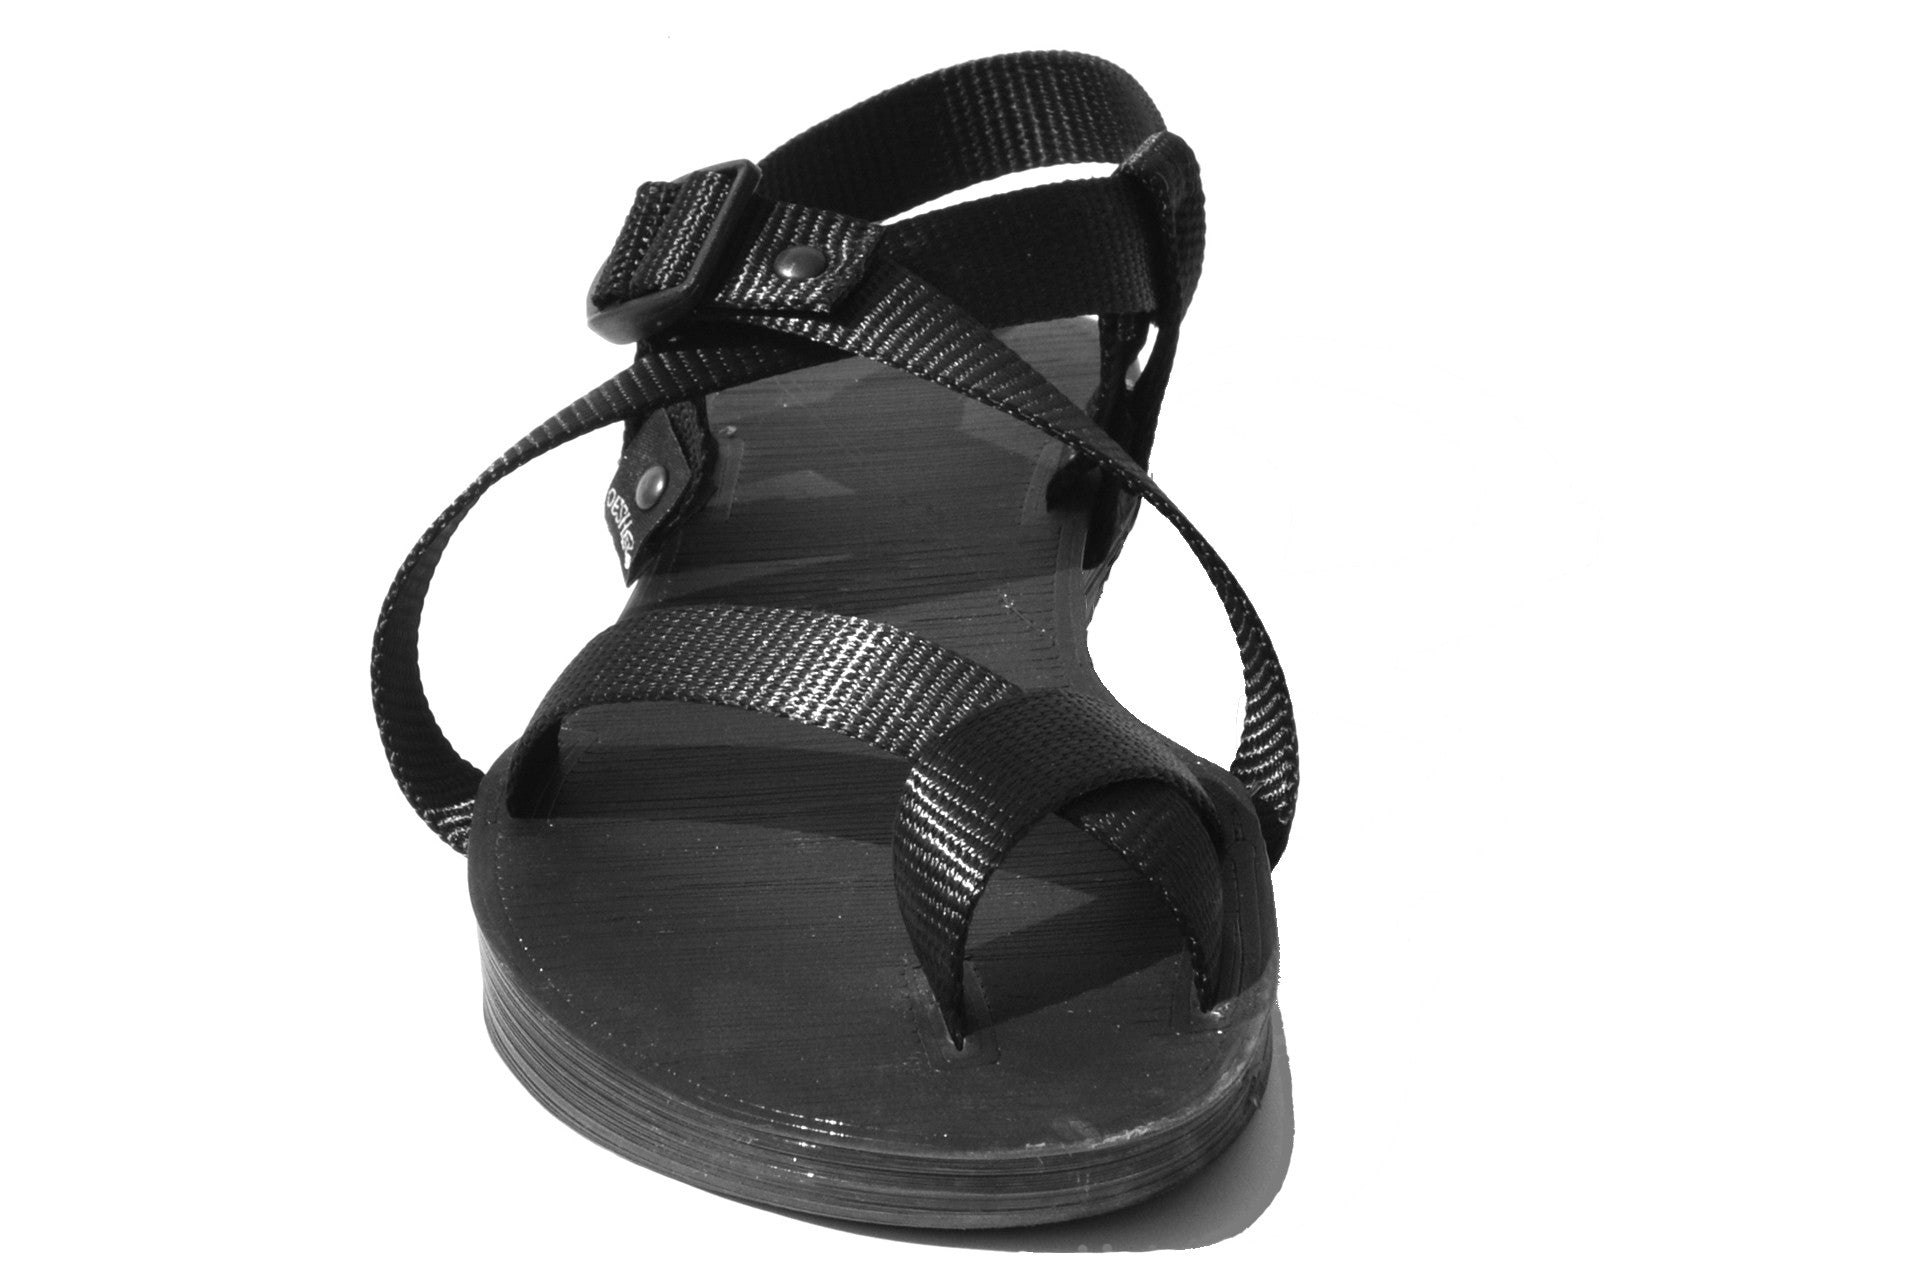 Athena-Artemis Sandal Collection-Obsidian